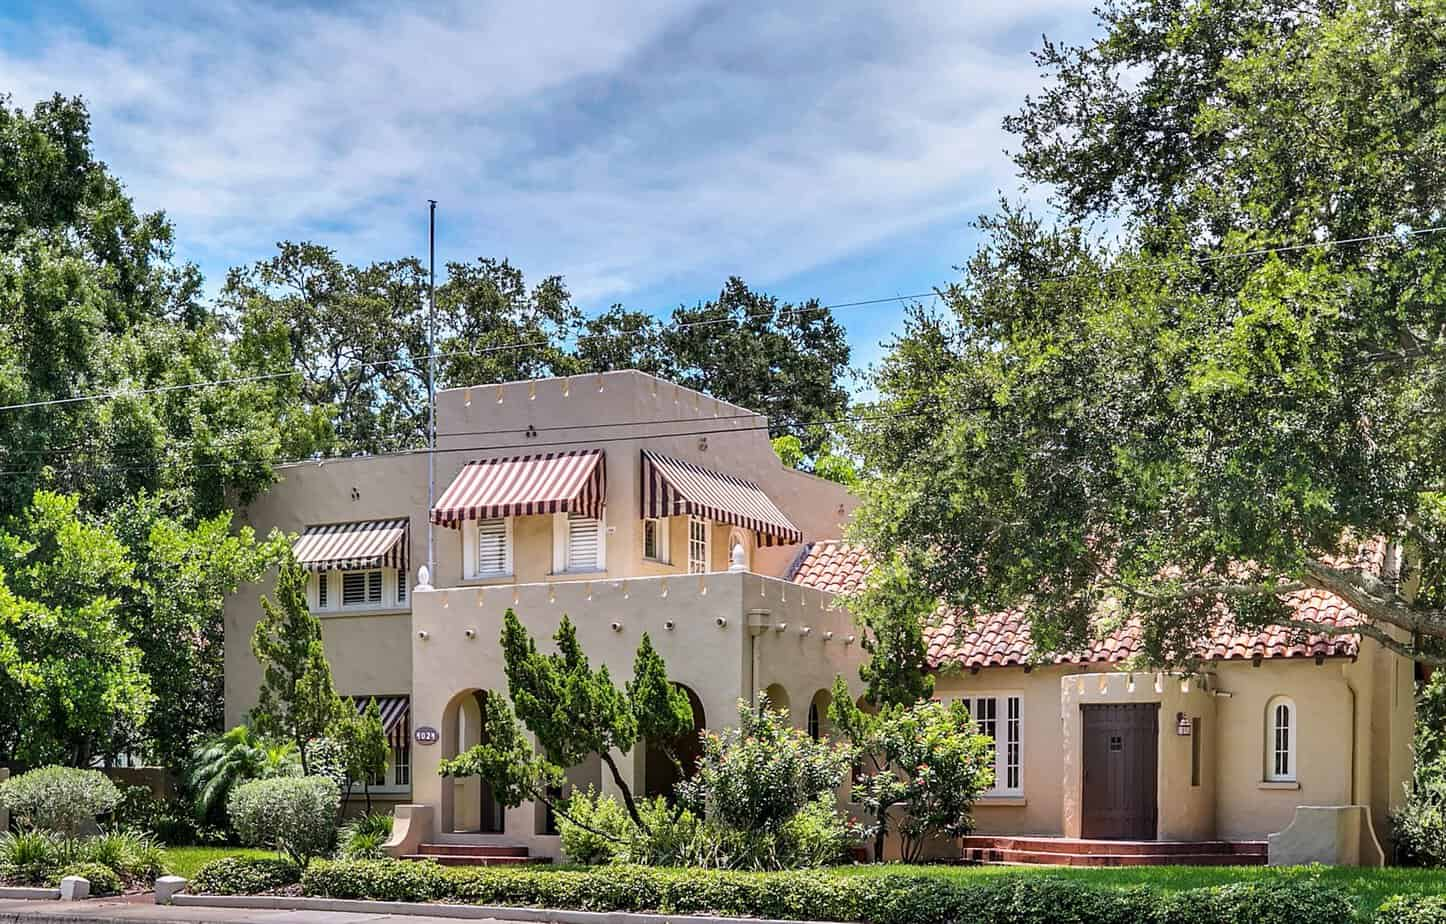 Exterior of luxury florida Mediterranean historic home with torrents, windows, and tile barrel roof for 4024 W Bay to Bay Blvd. Tampa FL 33629